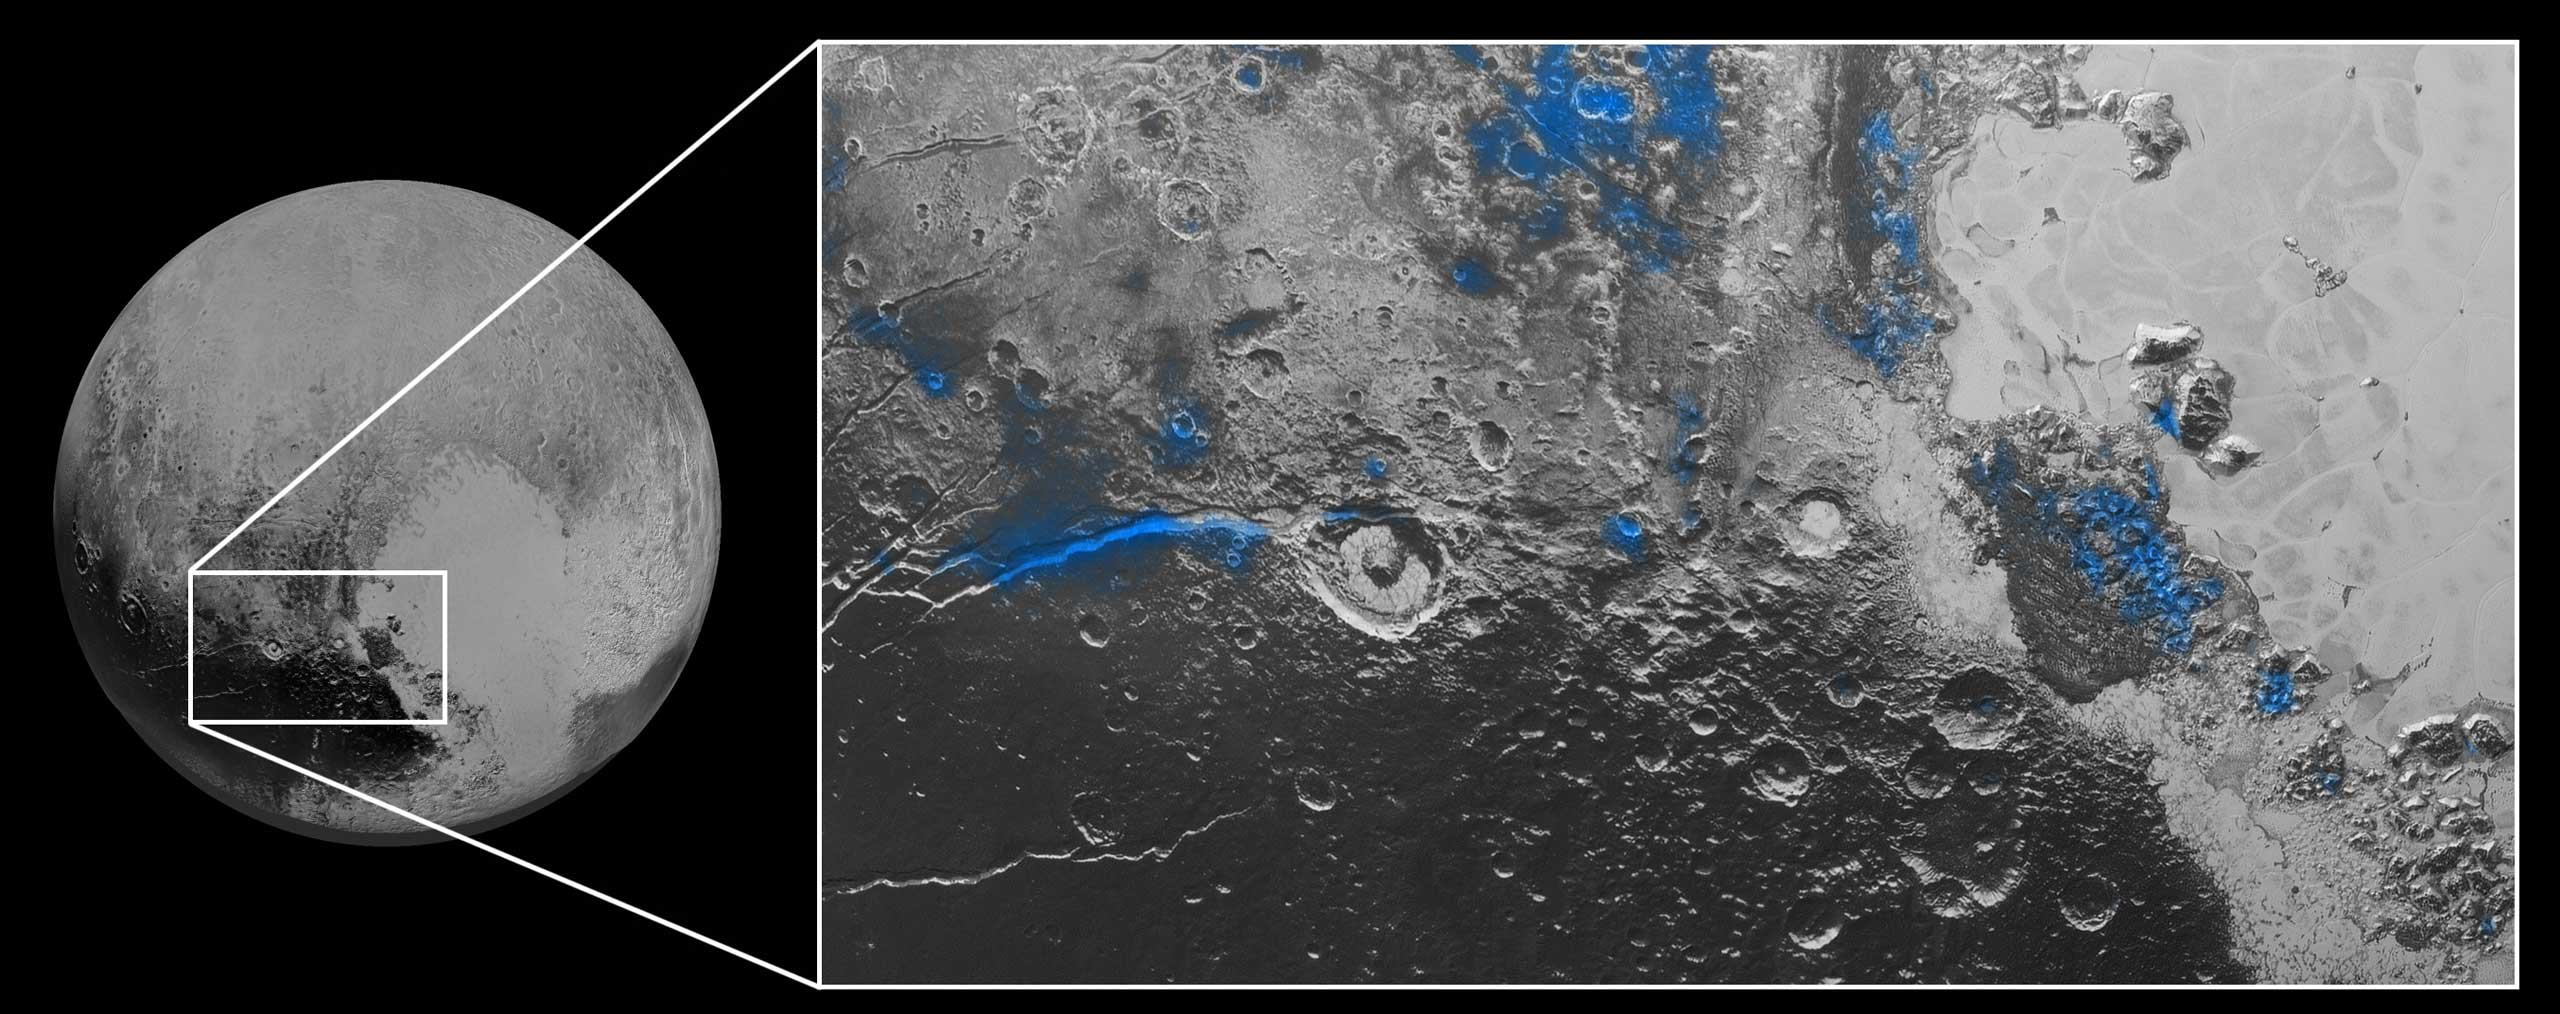 Regions with exposed water ice are highlighted in blue in this composite image from New Horizons' Ralph instrument, combining visible imagery from the Multispectral Visible Imaging Camera (MVIC) with infrared spectroscopy from the Linear Etalon Imaging Spectral Array (LEISA), Oct. 8, 2015.